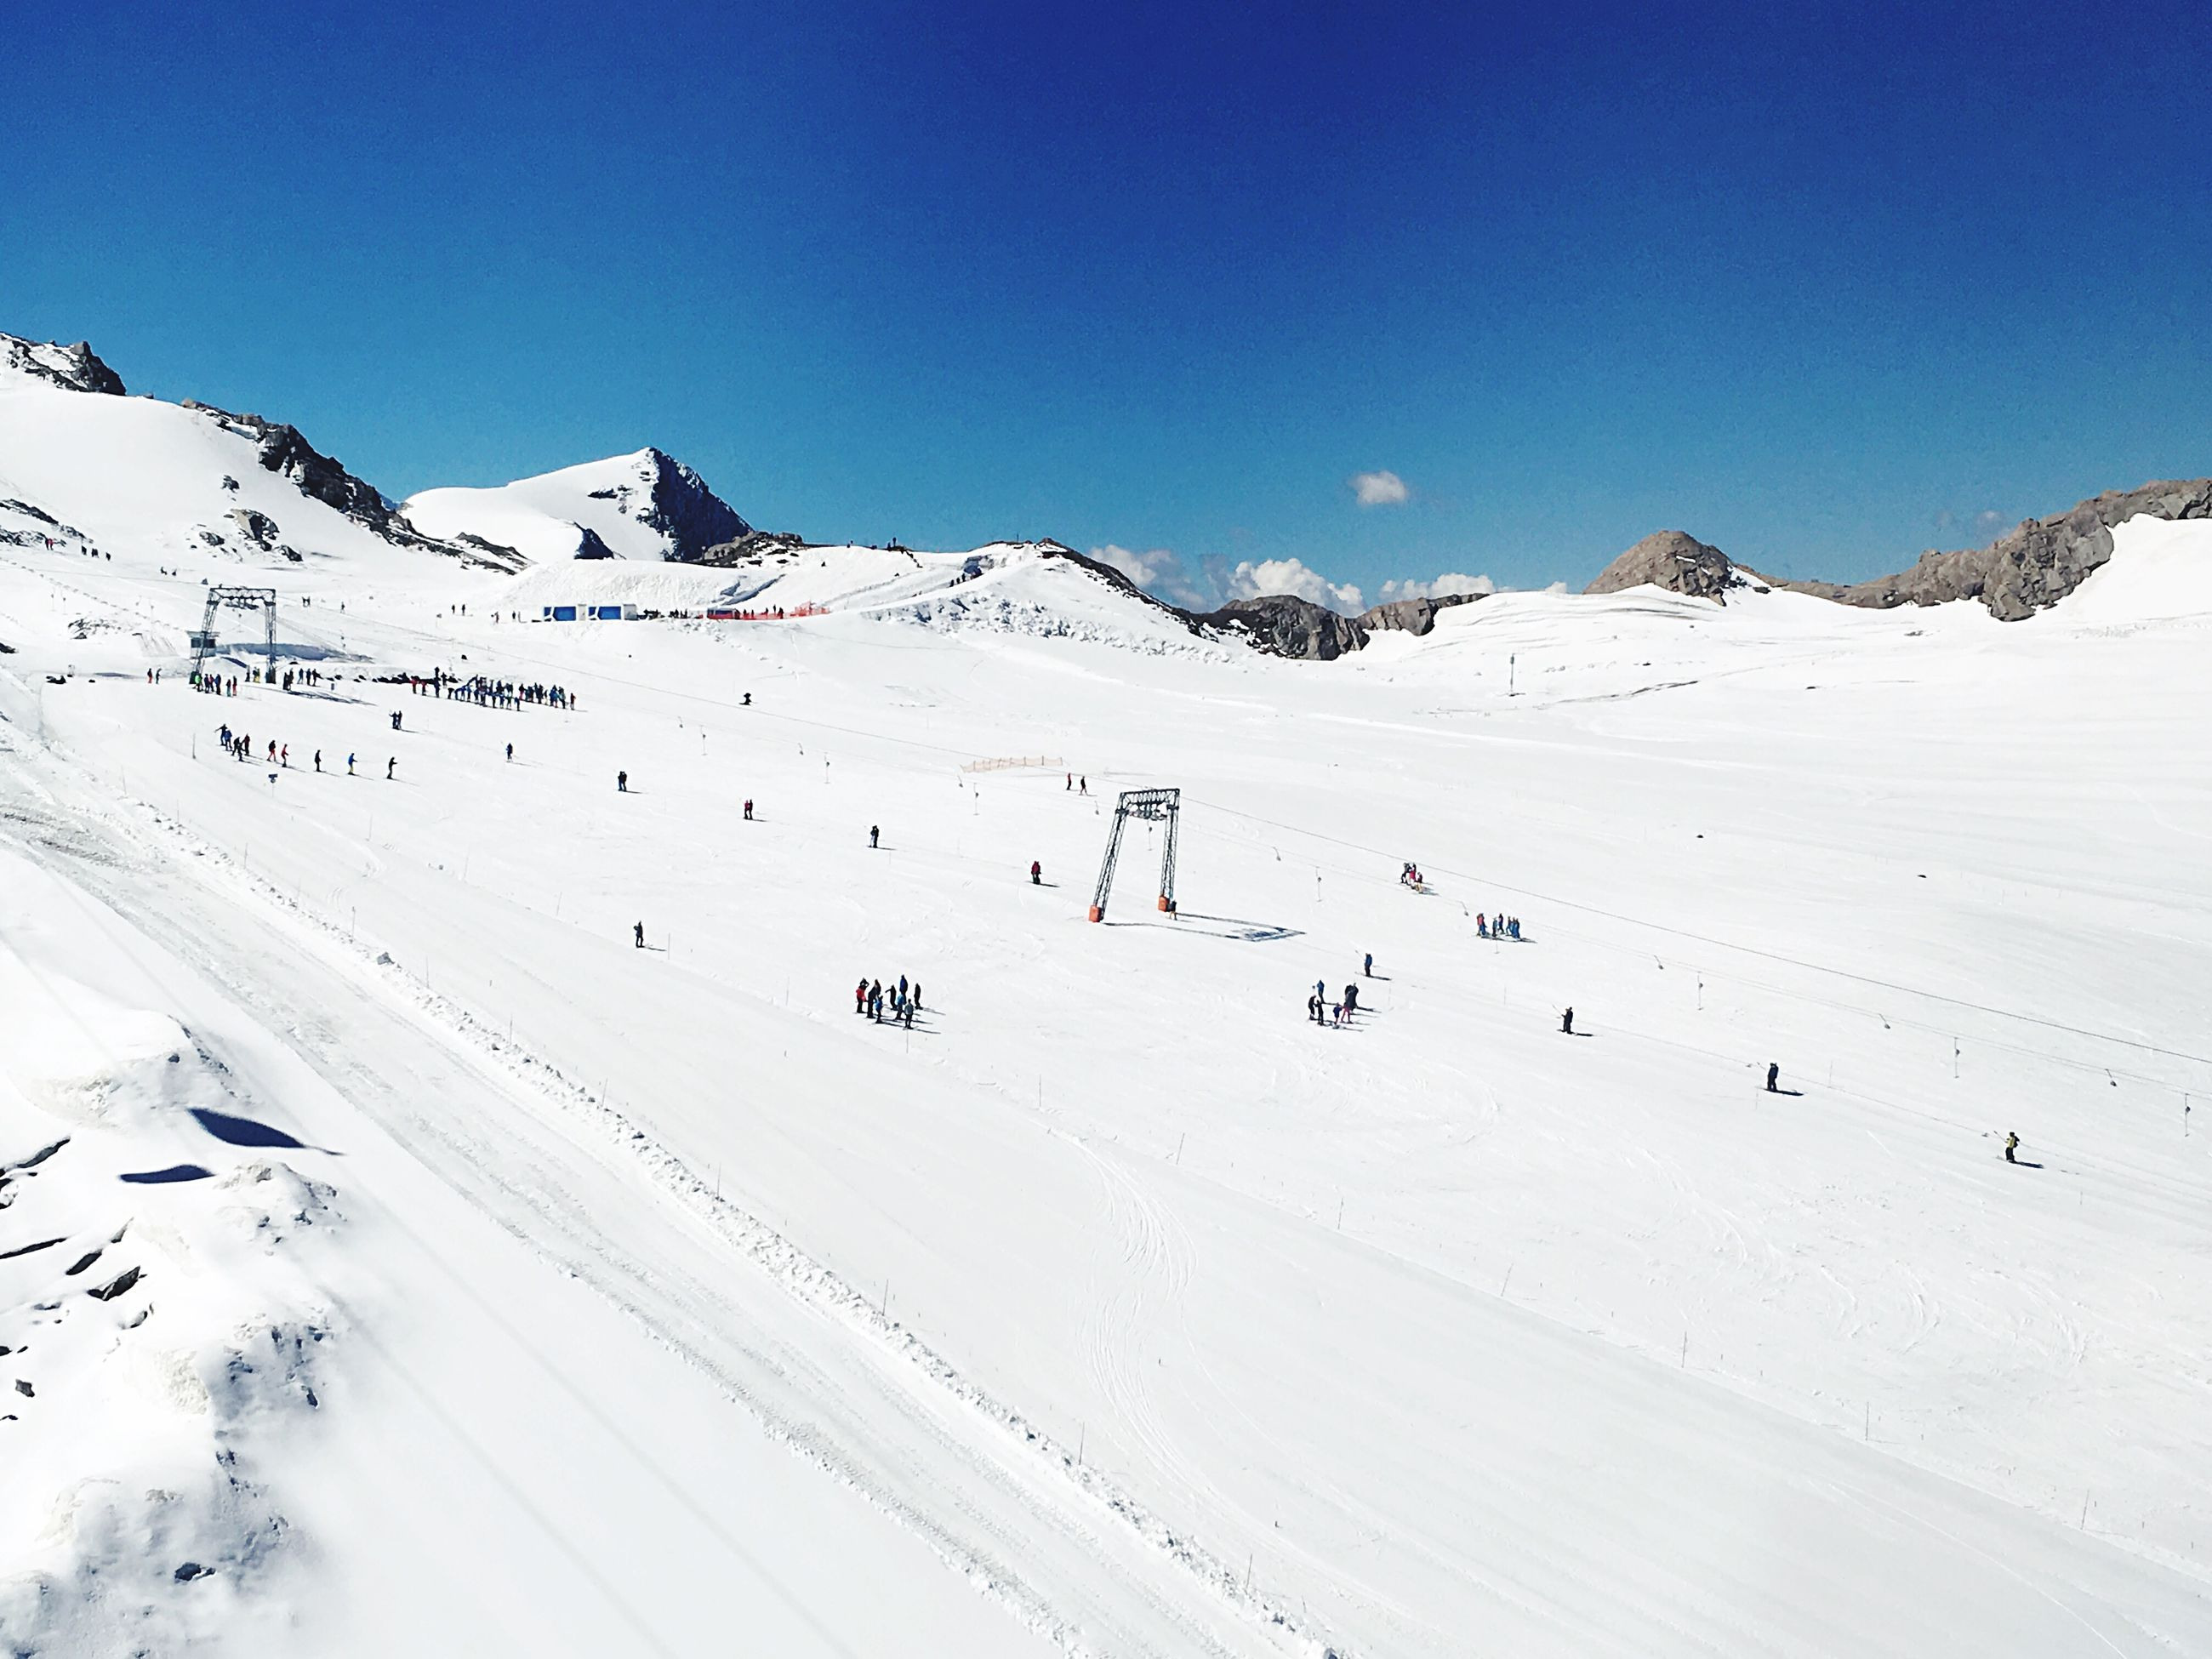 snow, winter, cold temperature, nature, mountain, white color, beauty in nature, scenics, tranquility, weather, sport, tranquil scene, adventure, day, outdoors, snowcapped mountain, landscape, clear sky, vacations, sunlight, mountain range, blue, ski holiday, extreme sports, sky, snowboarding, ski lift, no people